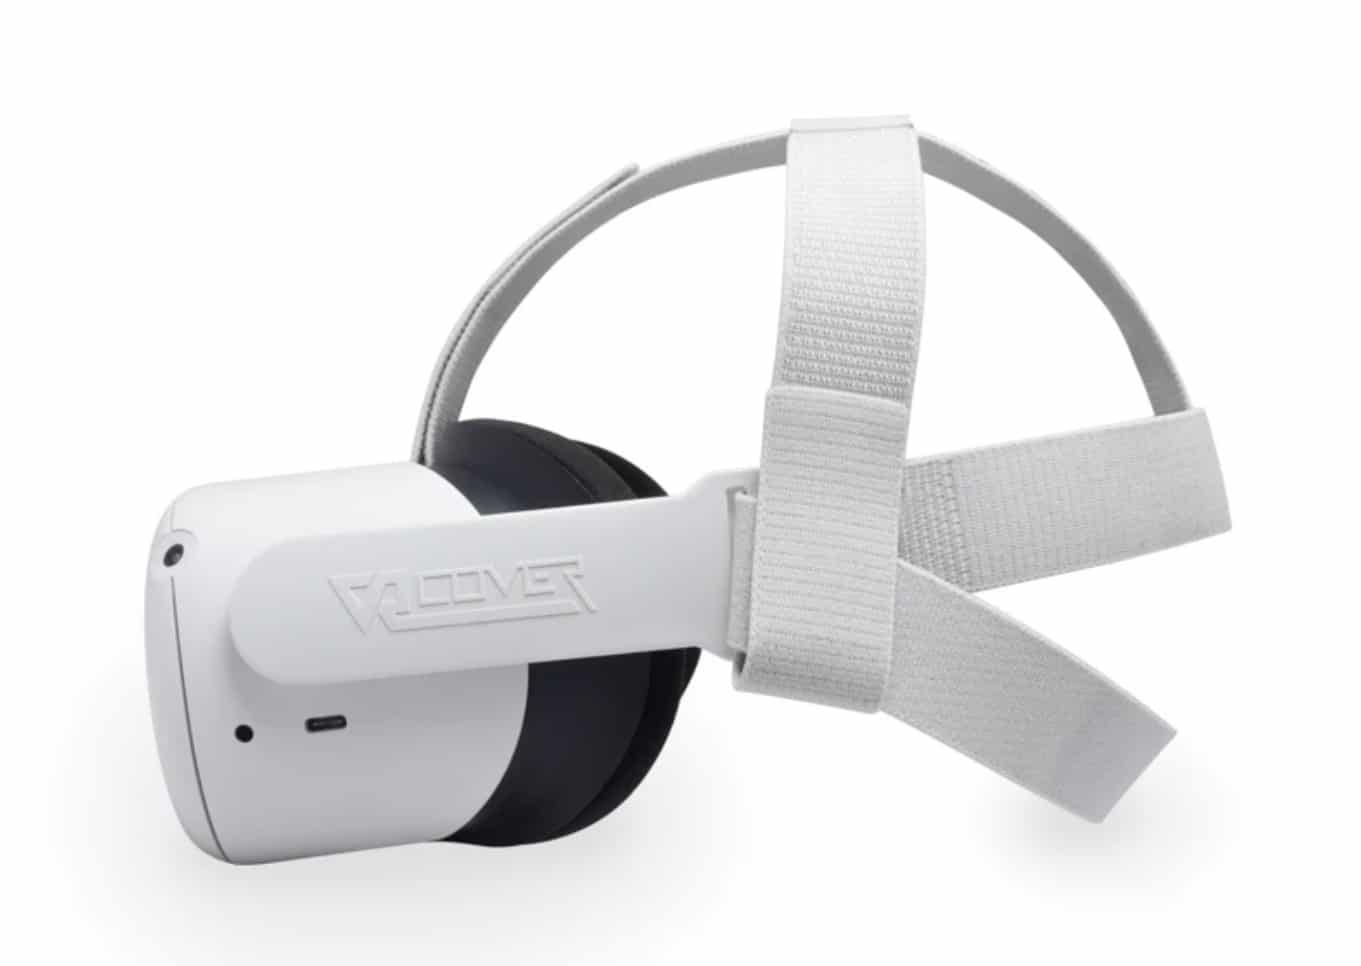 vrcover quest 2 headstrap replacement